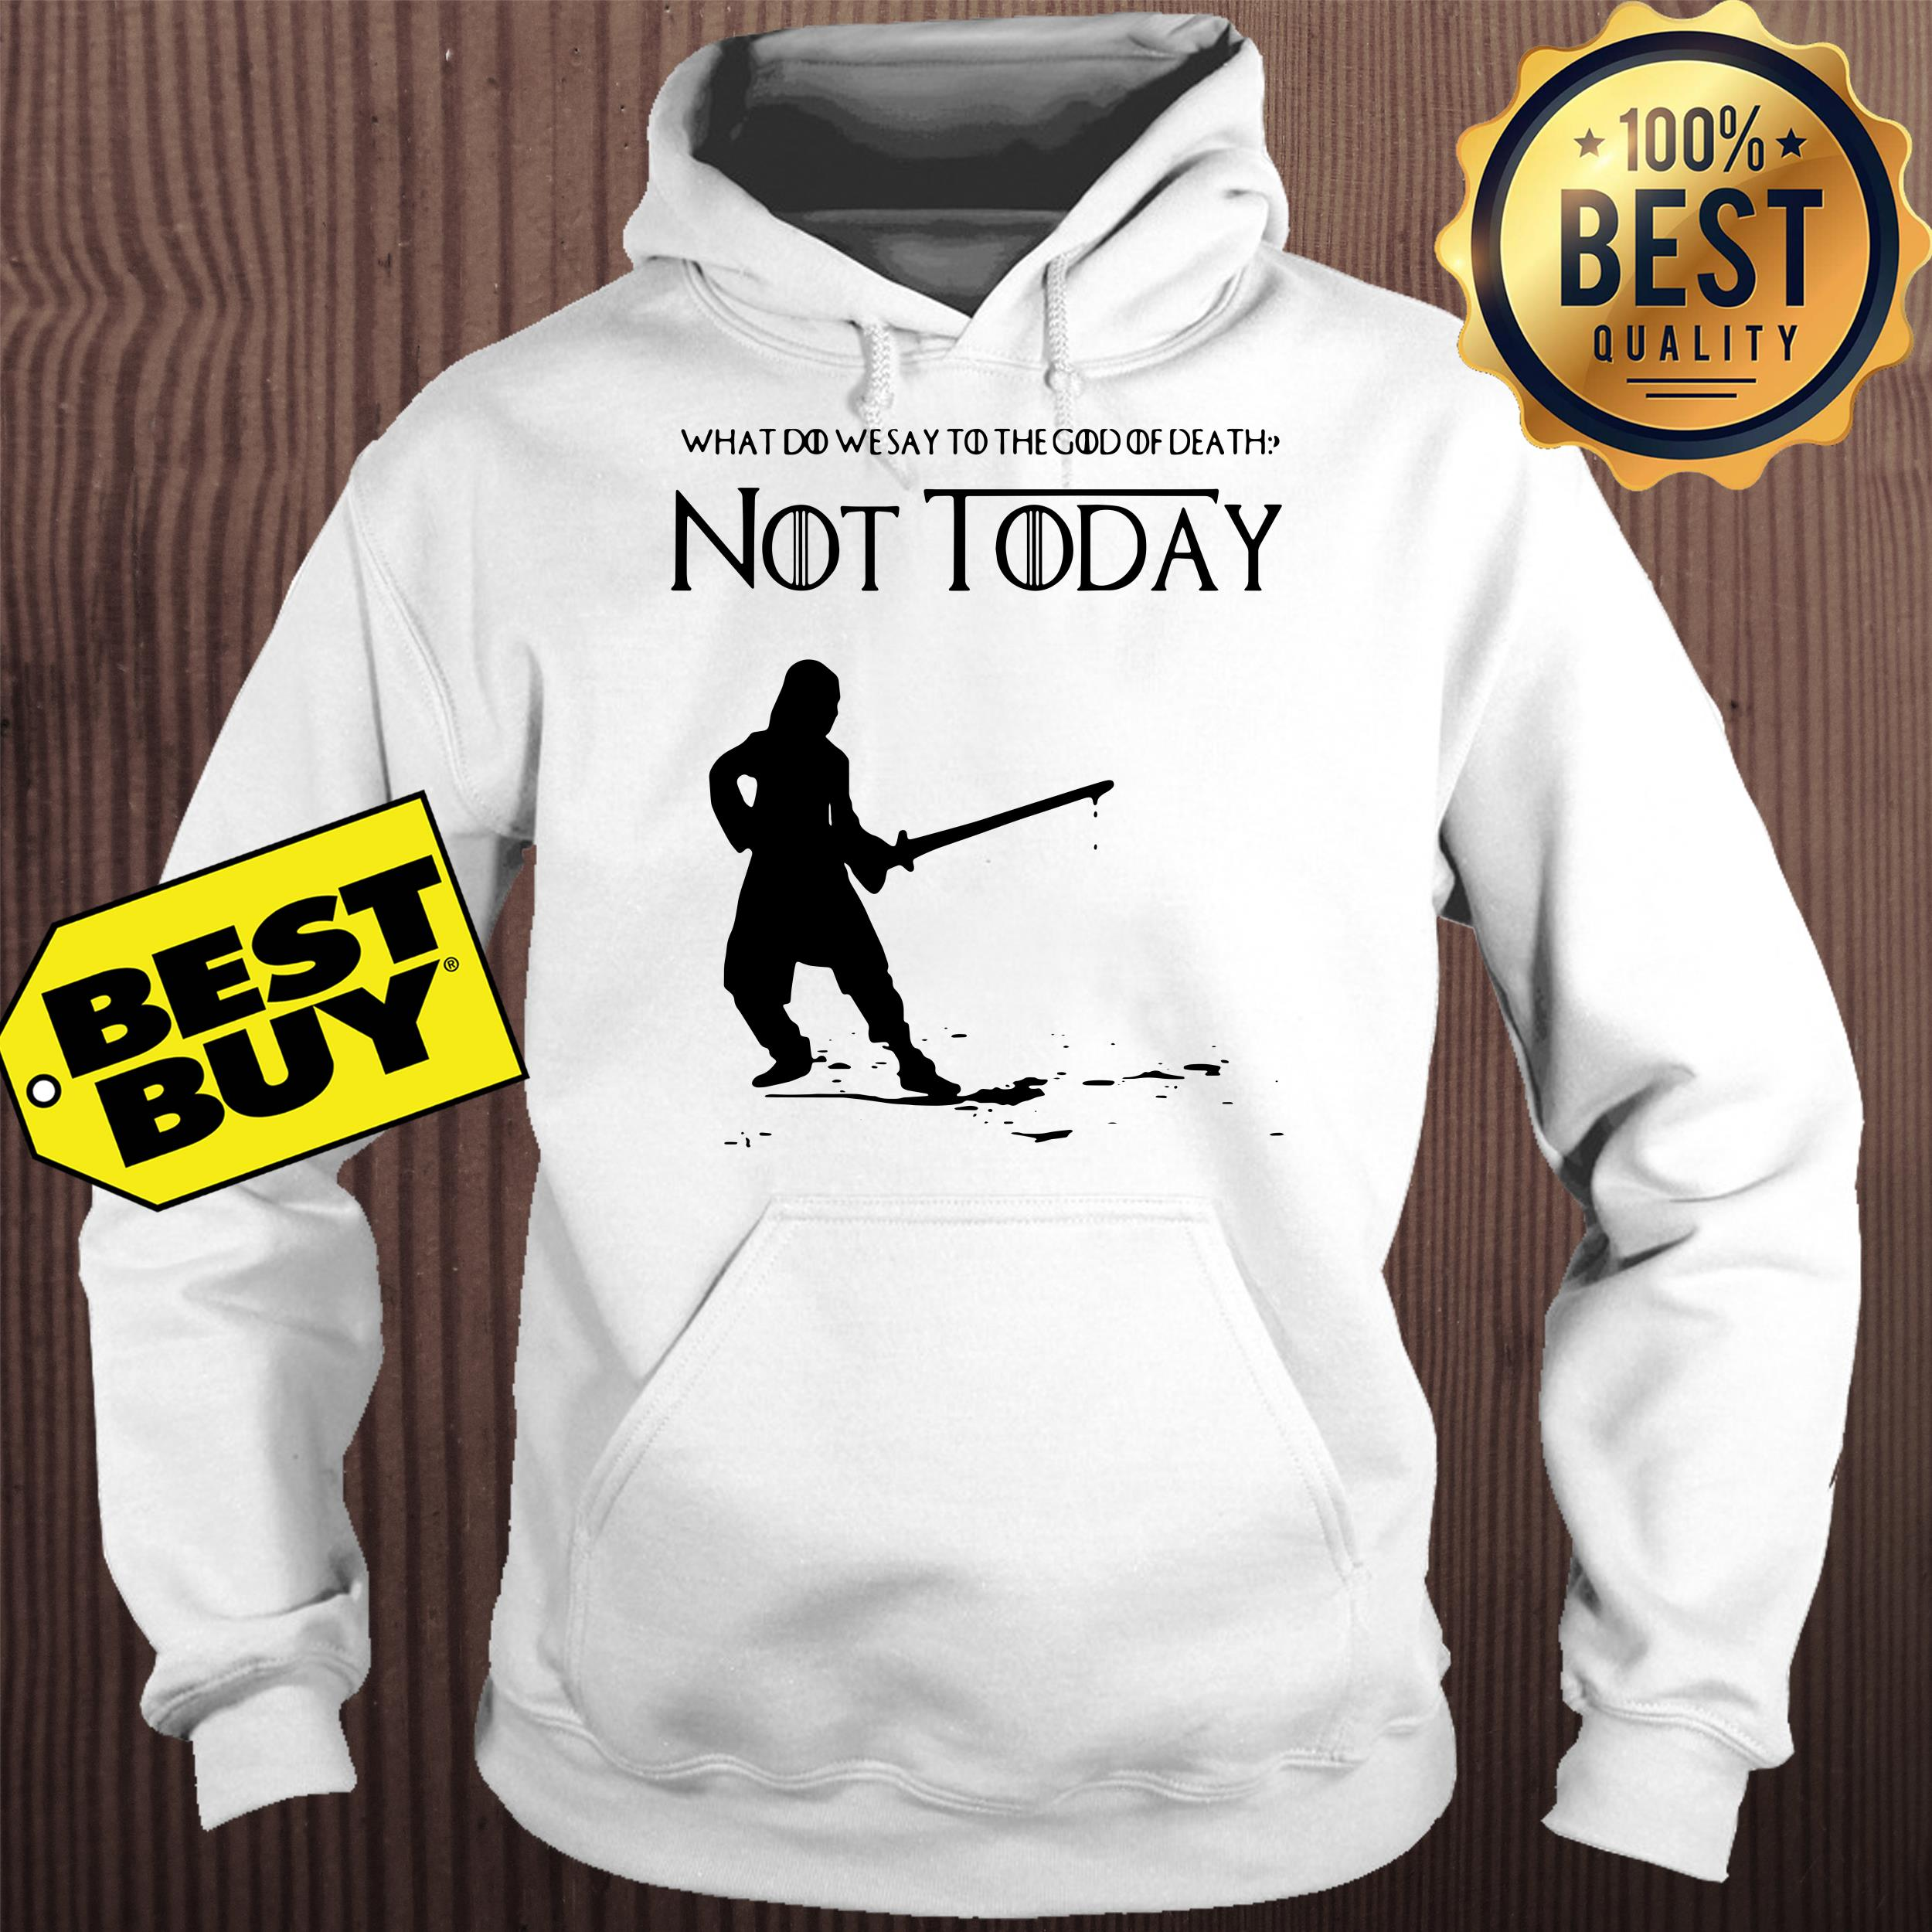 Not Today Shirt What Do We Say To The God Of Death hoodie